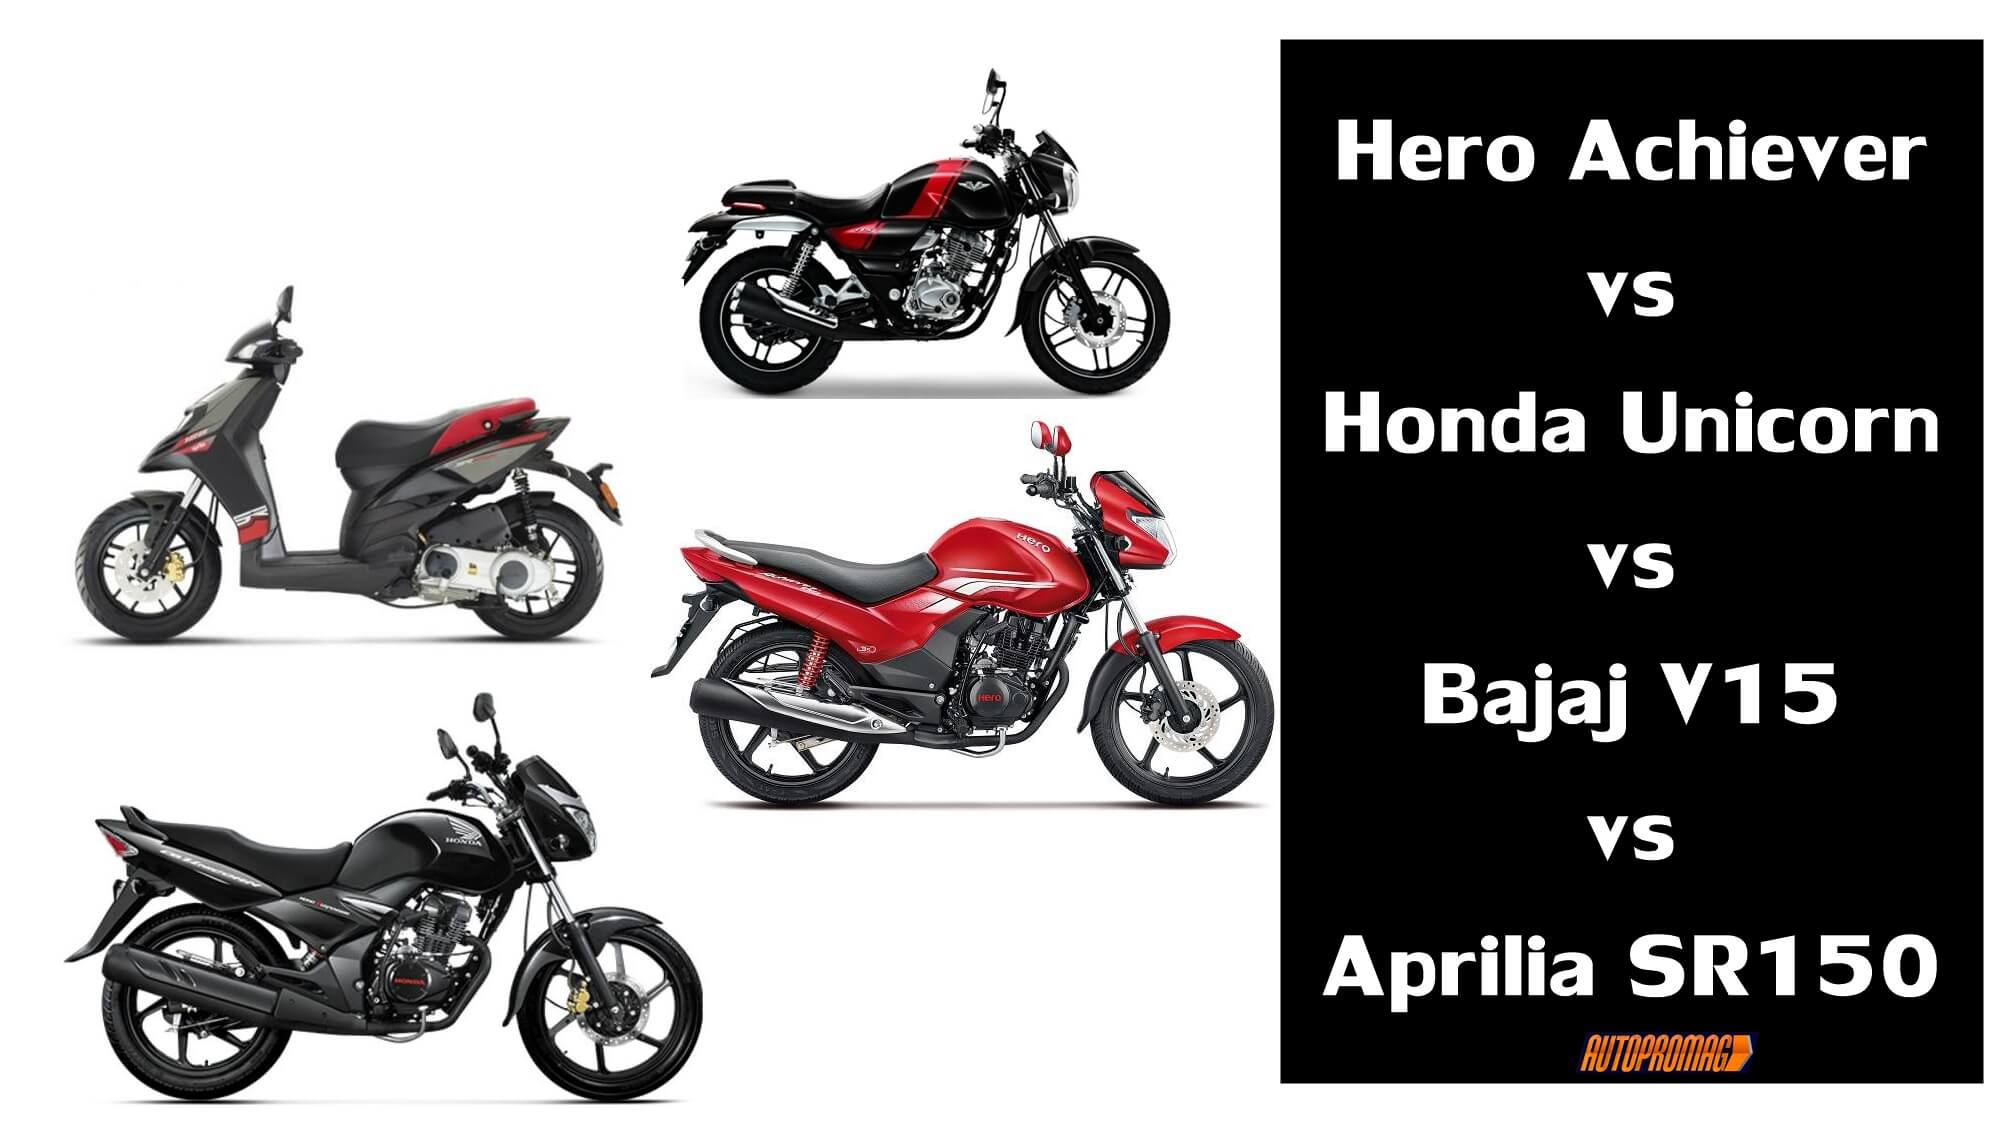 Hero Achiever vs Honda Unicorn